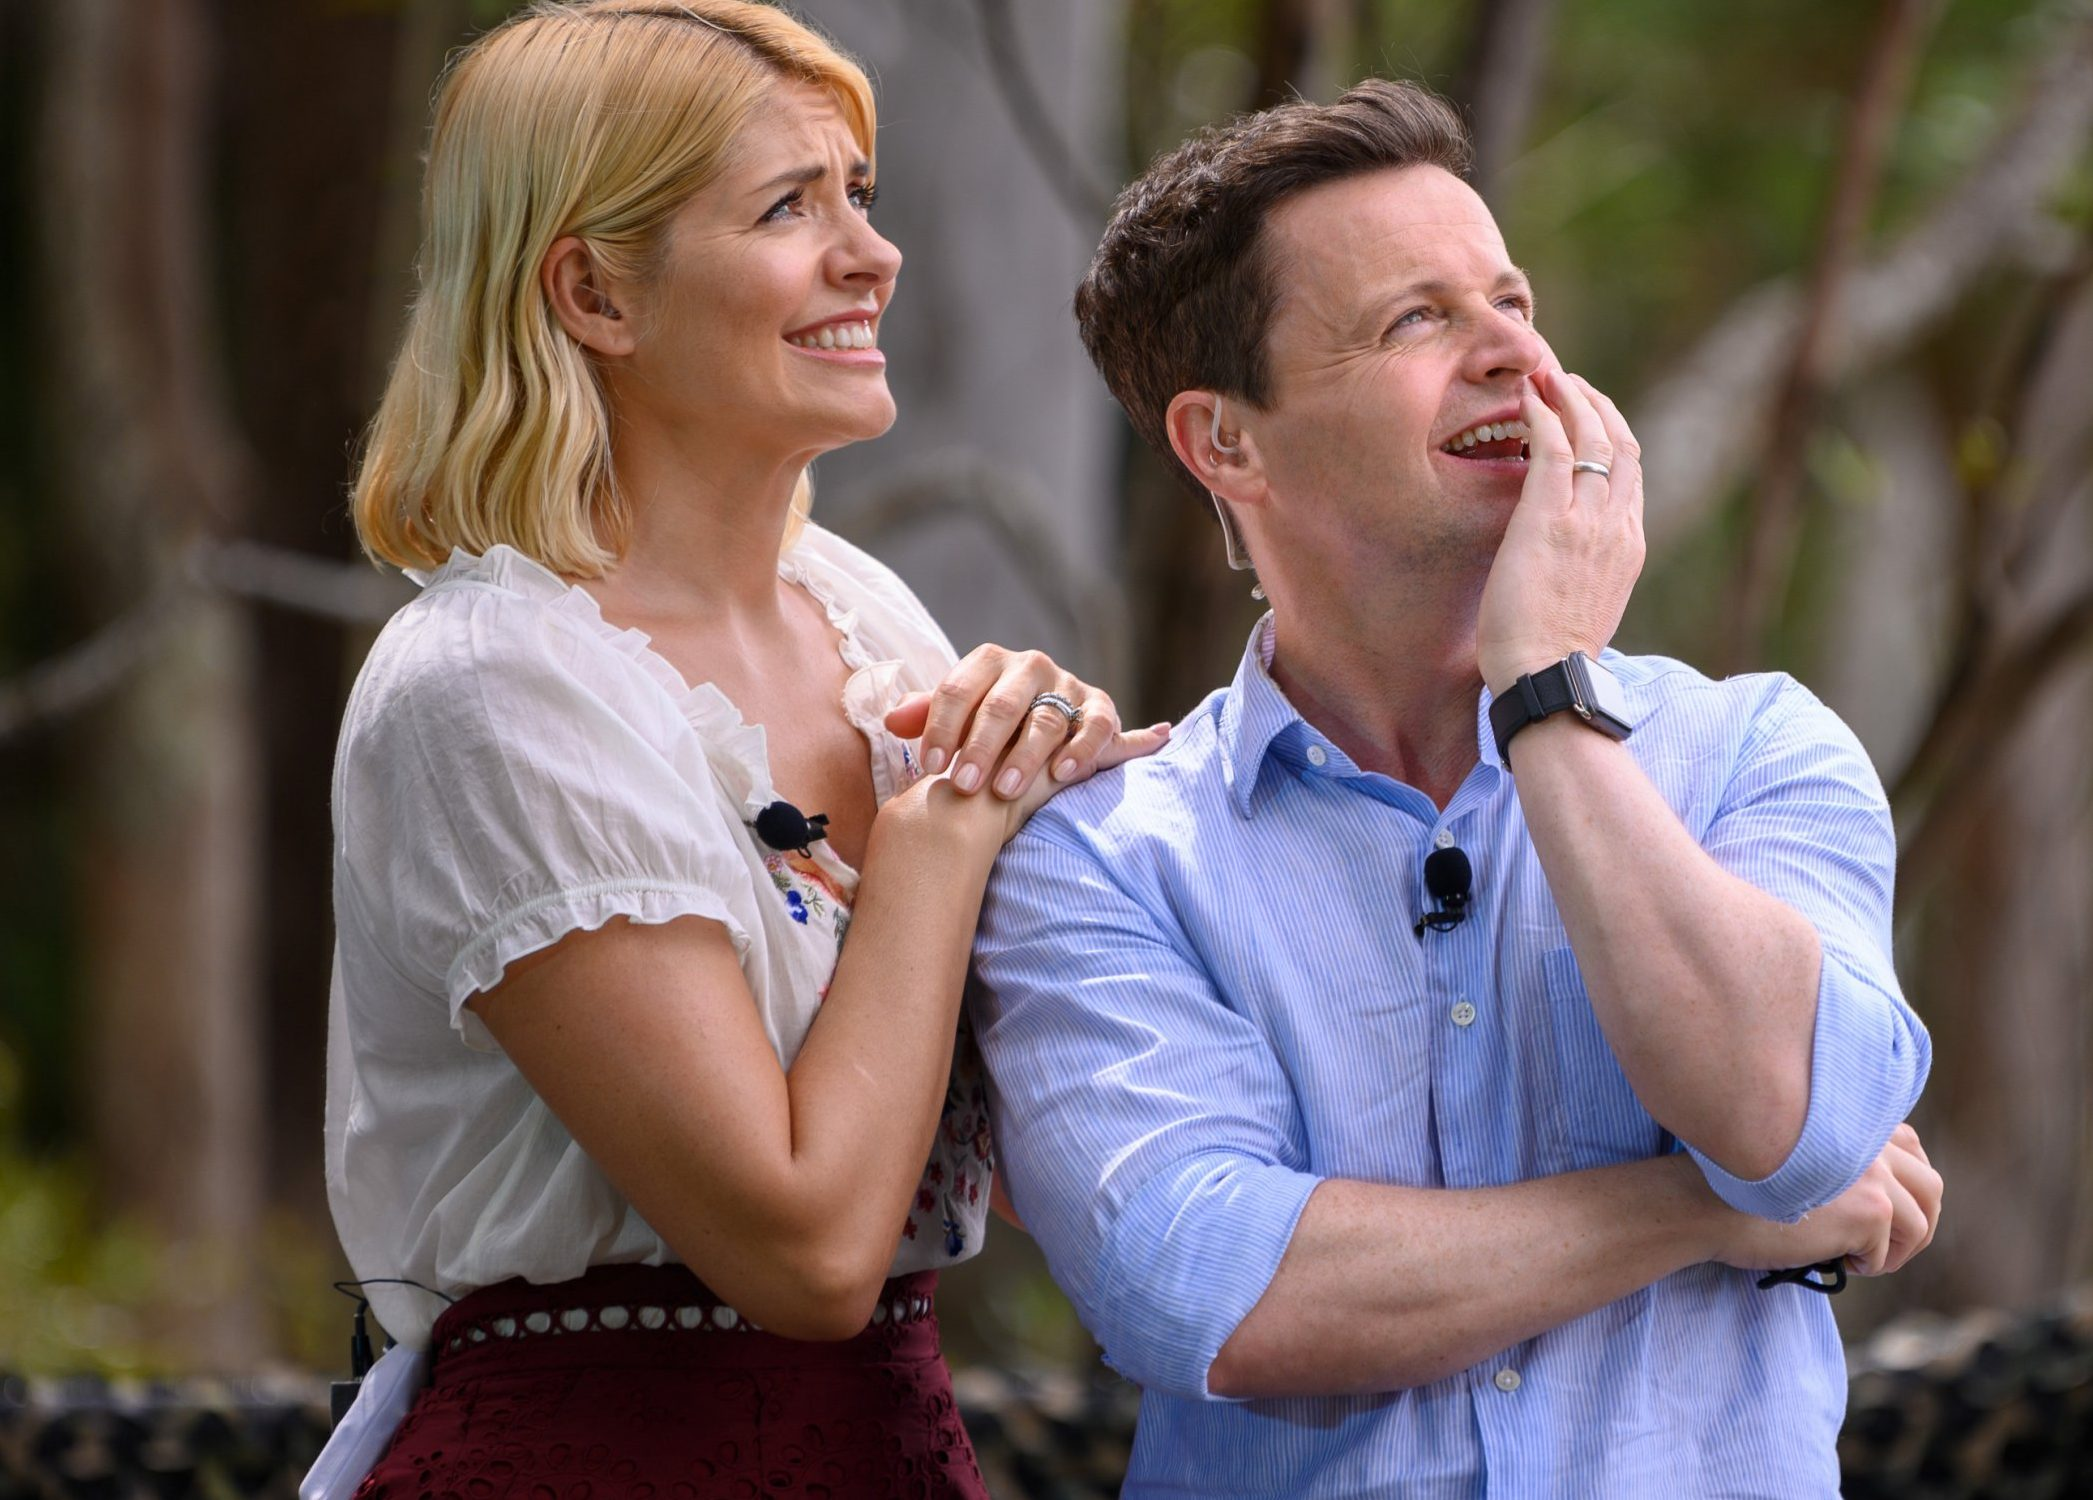 STRICT EMBARGO - NOT TO BE USED BEFORE 22:30 GMT, 17 NOV 2018 - EDITORIAL USE ONLY Mandatory Credit: Photo by James Gourley/ITV/REX/Shutterstock (9982809au) Holly Willoughby and Declan Donnelly 'I'm a Celebrity...Get Me Out of Here!' TV Show, Series 18, Australia - 17 Nov 2018